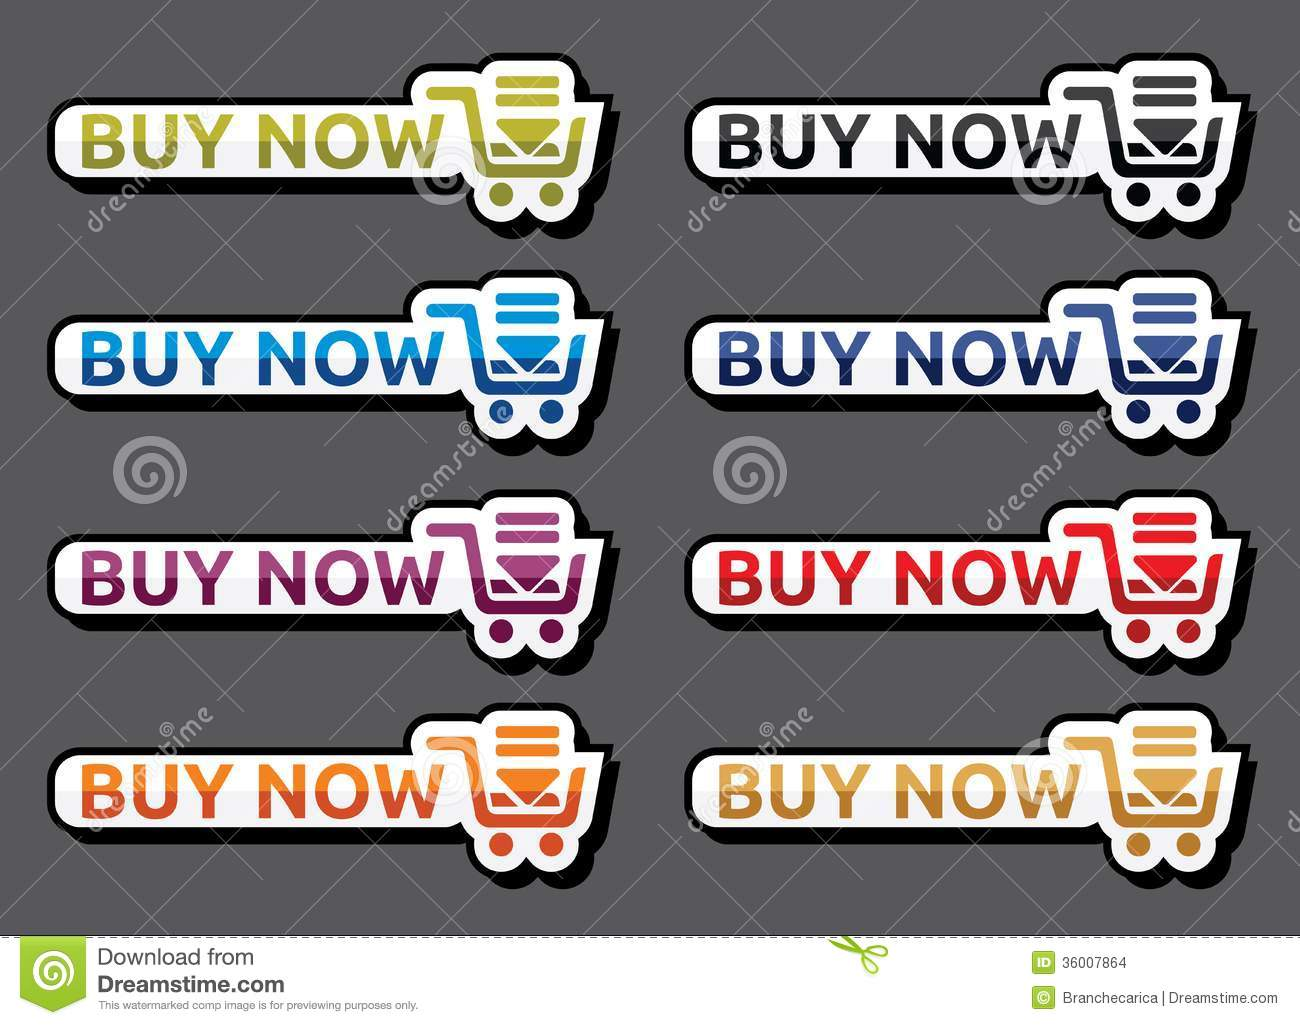 Buy Now Icon Set Stock Images - Image: 36007864: dreamstime.com/stock-images-buy-now-icon-set-vector-illustration...